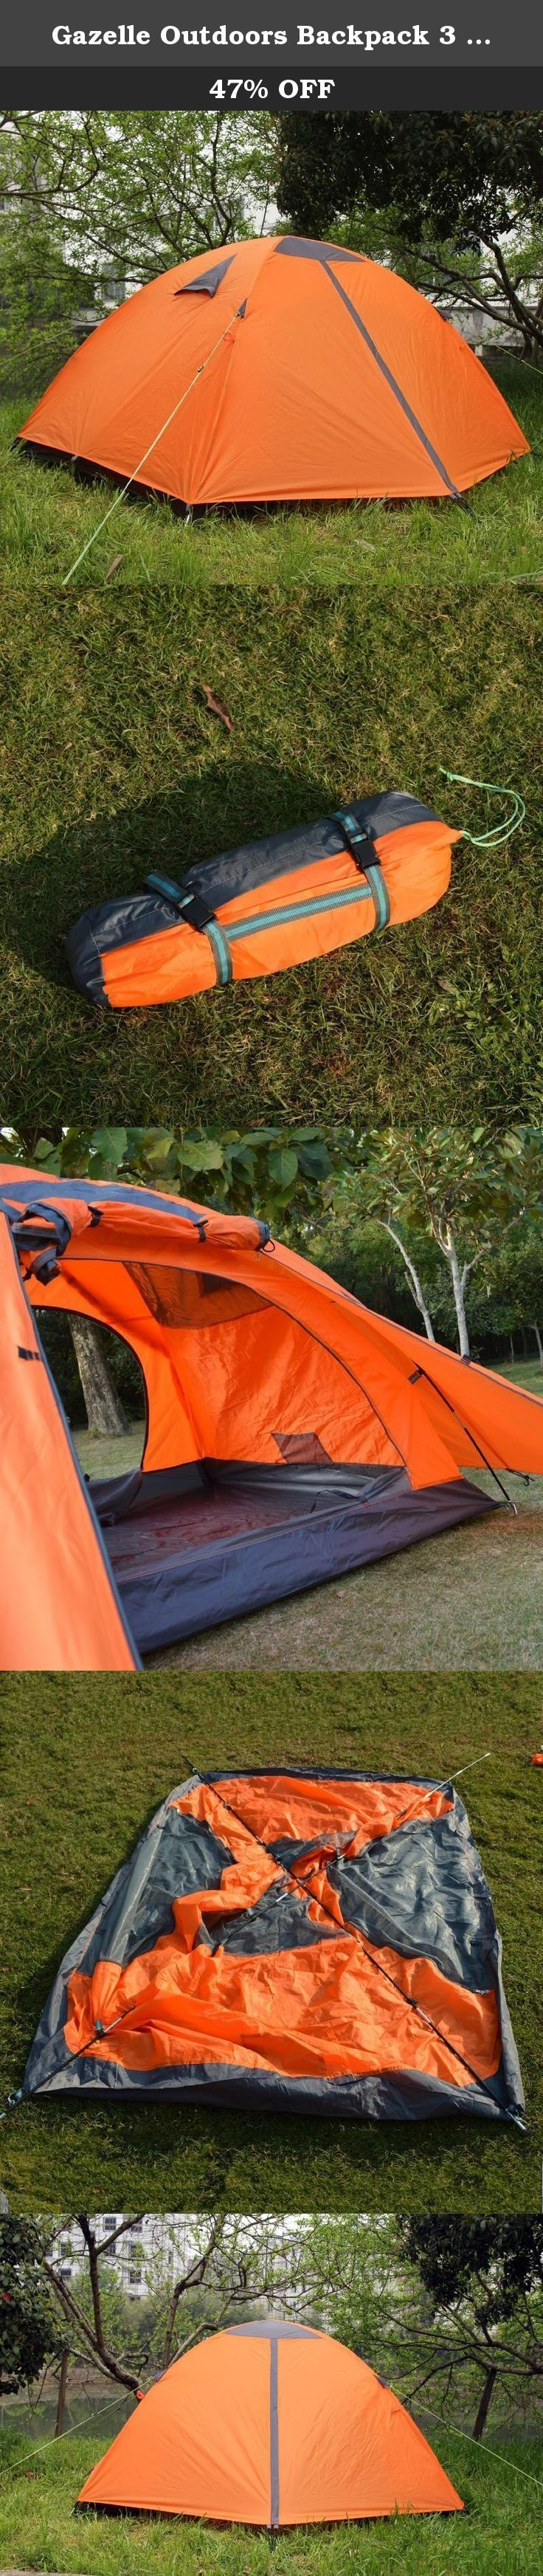 Gazelle Outdoors Backpack 3 Persons Double Layer ALUMINUM POLES Waterproof Camping Hiking Tent with Rainfly Orange. This Tent is lightweight and protective. You can go backpacking from Grand Canyon through Yellowstone National Park with no worries. Our tent uses high density mesh to bring the summer breezes in, and keep the fly out. It is suitable for hiking, climbing, camping, self-driving tour, fishing and other outdoor activities. Features: - Three-season, two Doors, 2-3-person tent -...